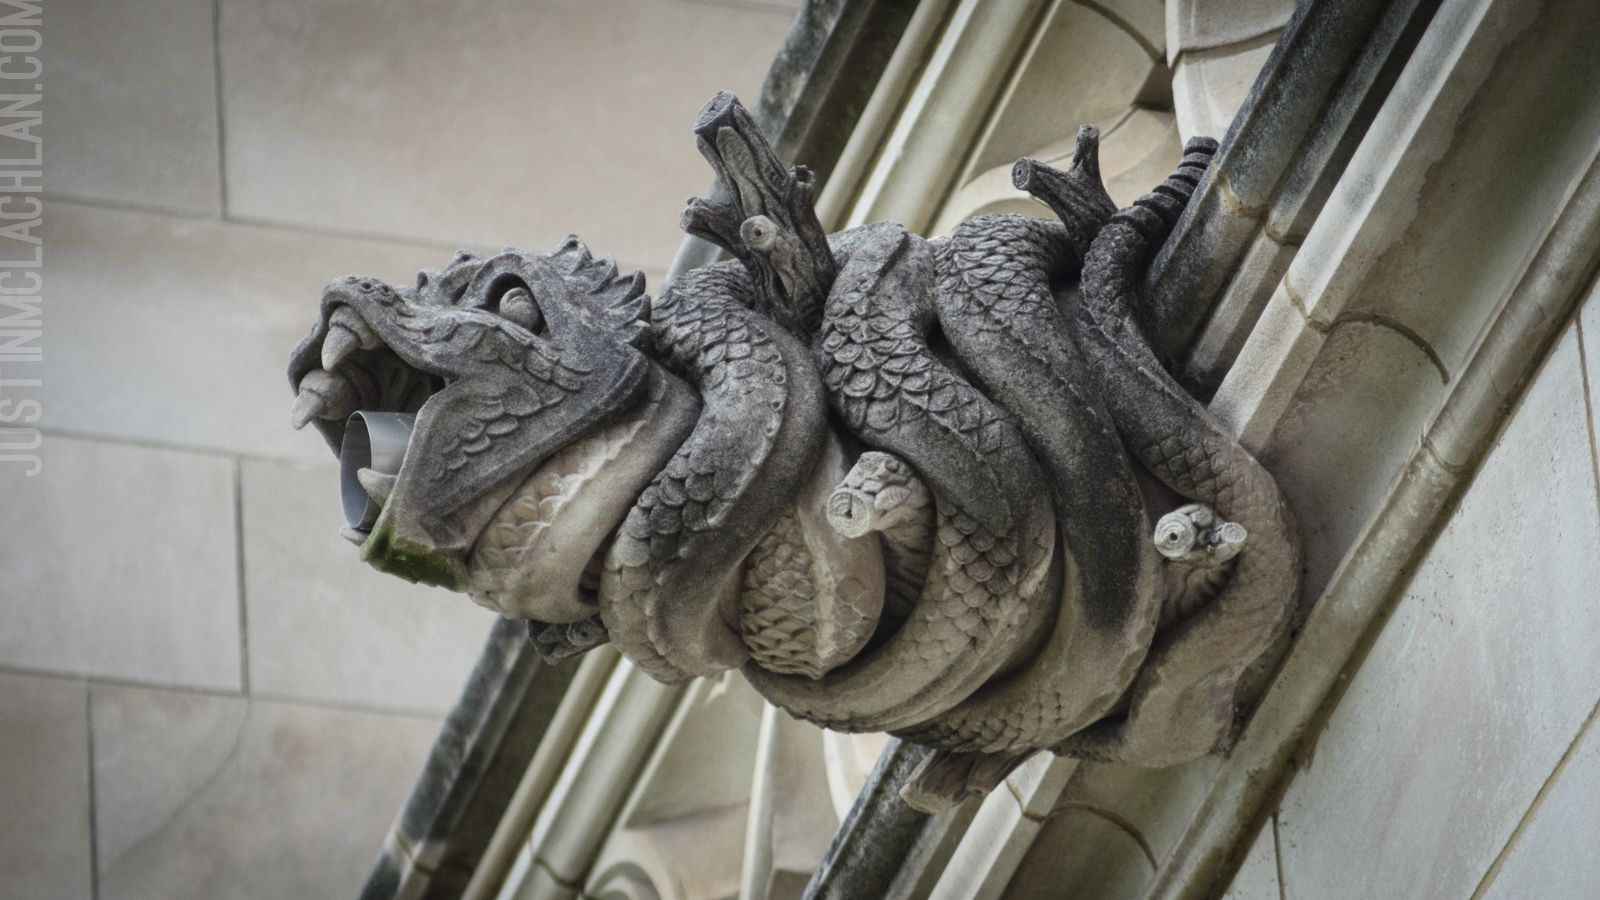 North America also has its fair share of gargoyles They protect many of the older buildings in cities like New York Chicago and Philadelphia